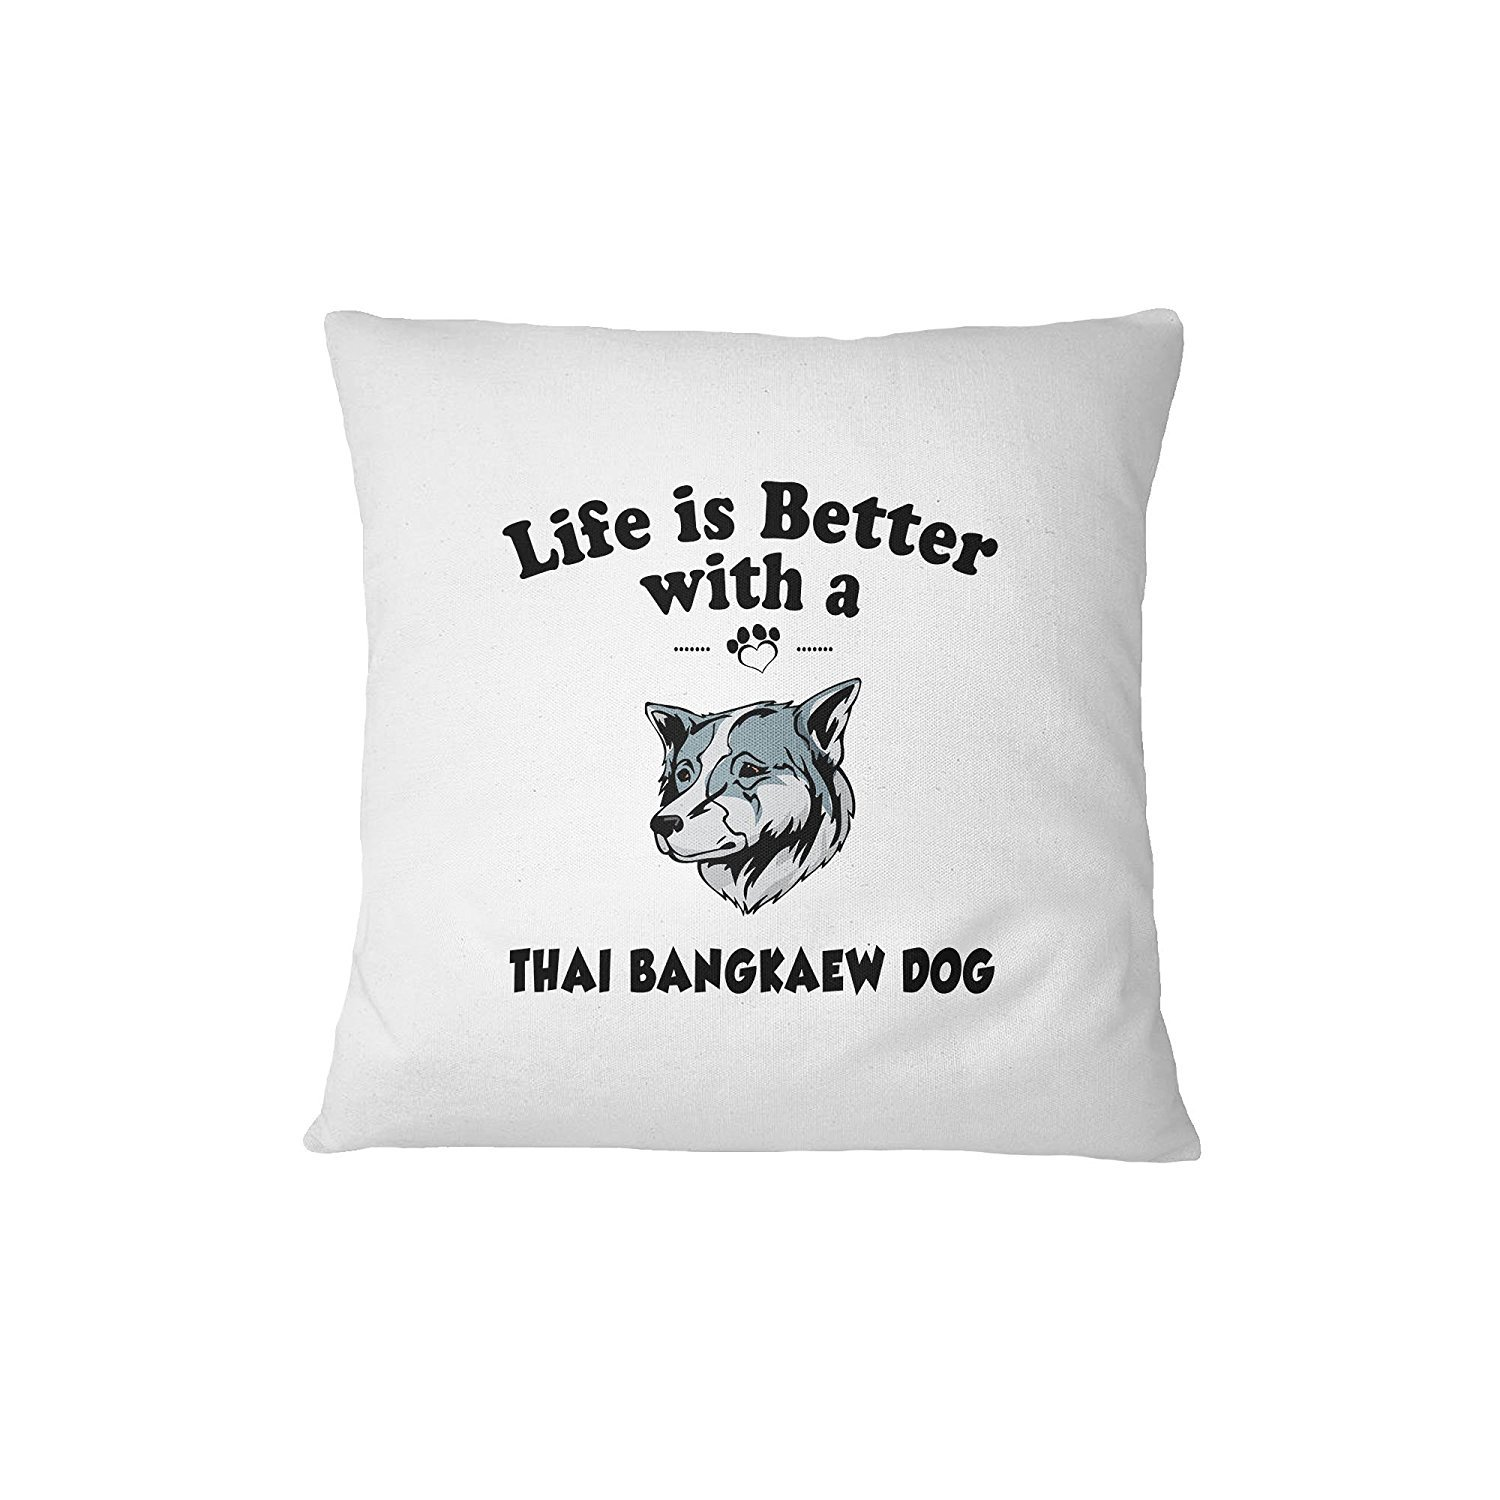 THAI BANGKAEW DOG Life is Better Sofa Bed Home Decor Pillow Cover Pillow & Cover Set ArtsLifes